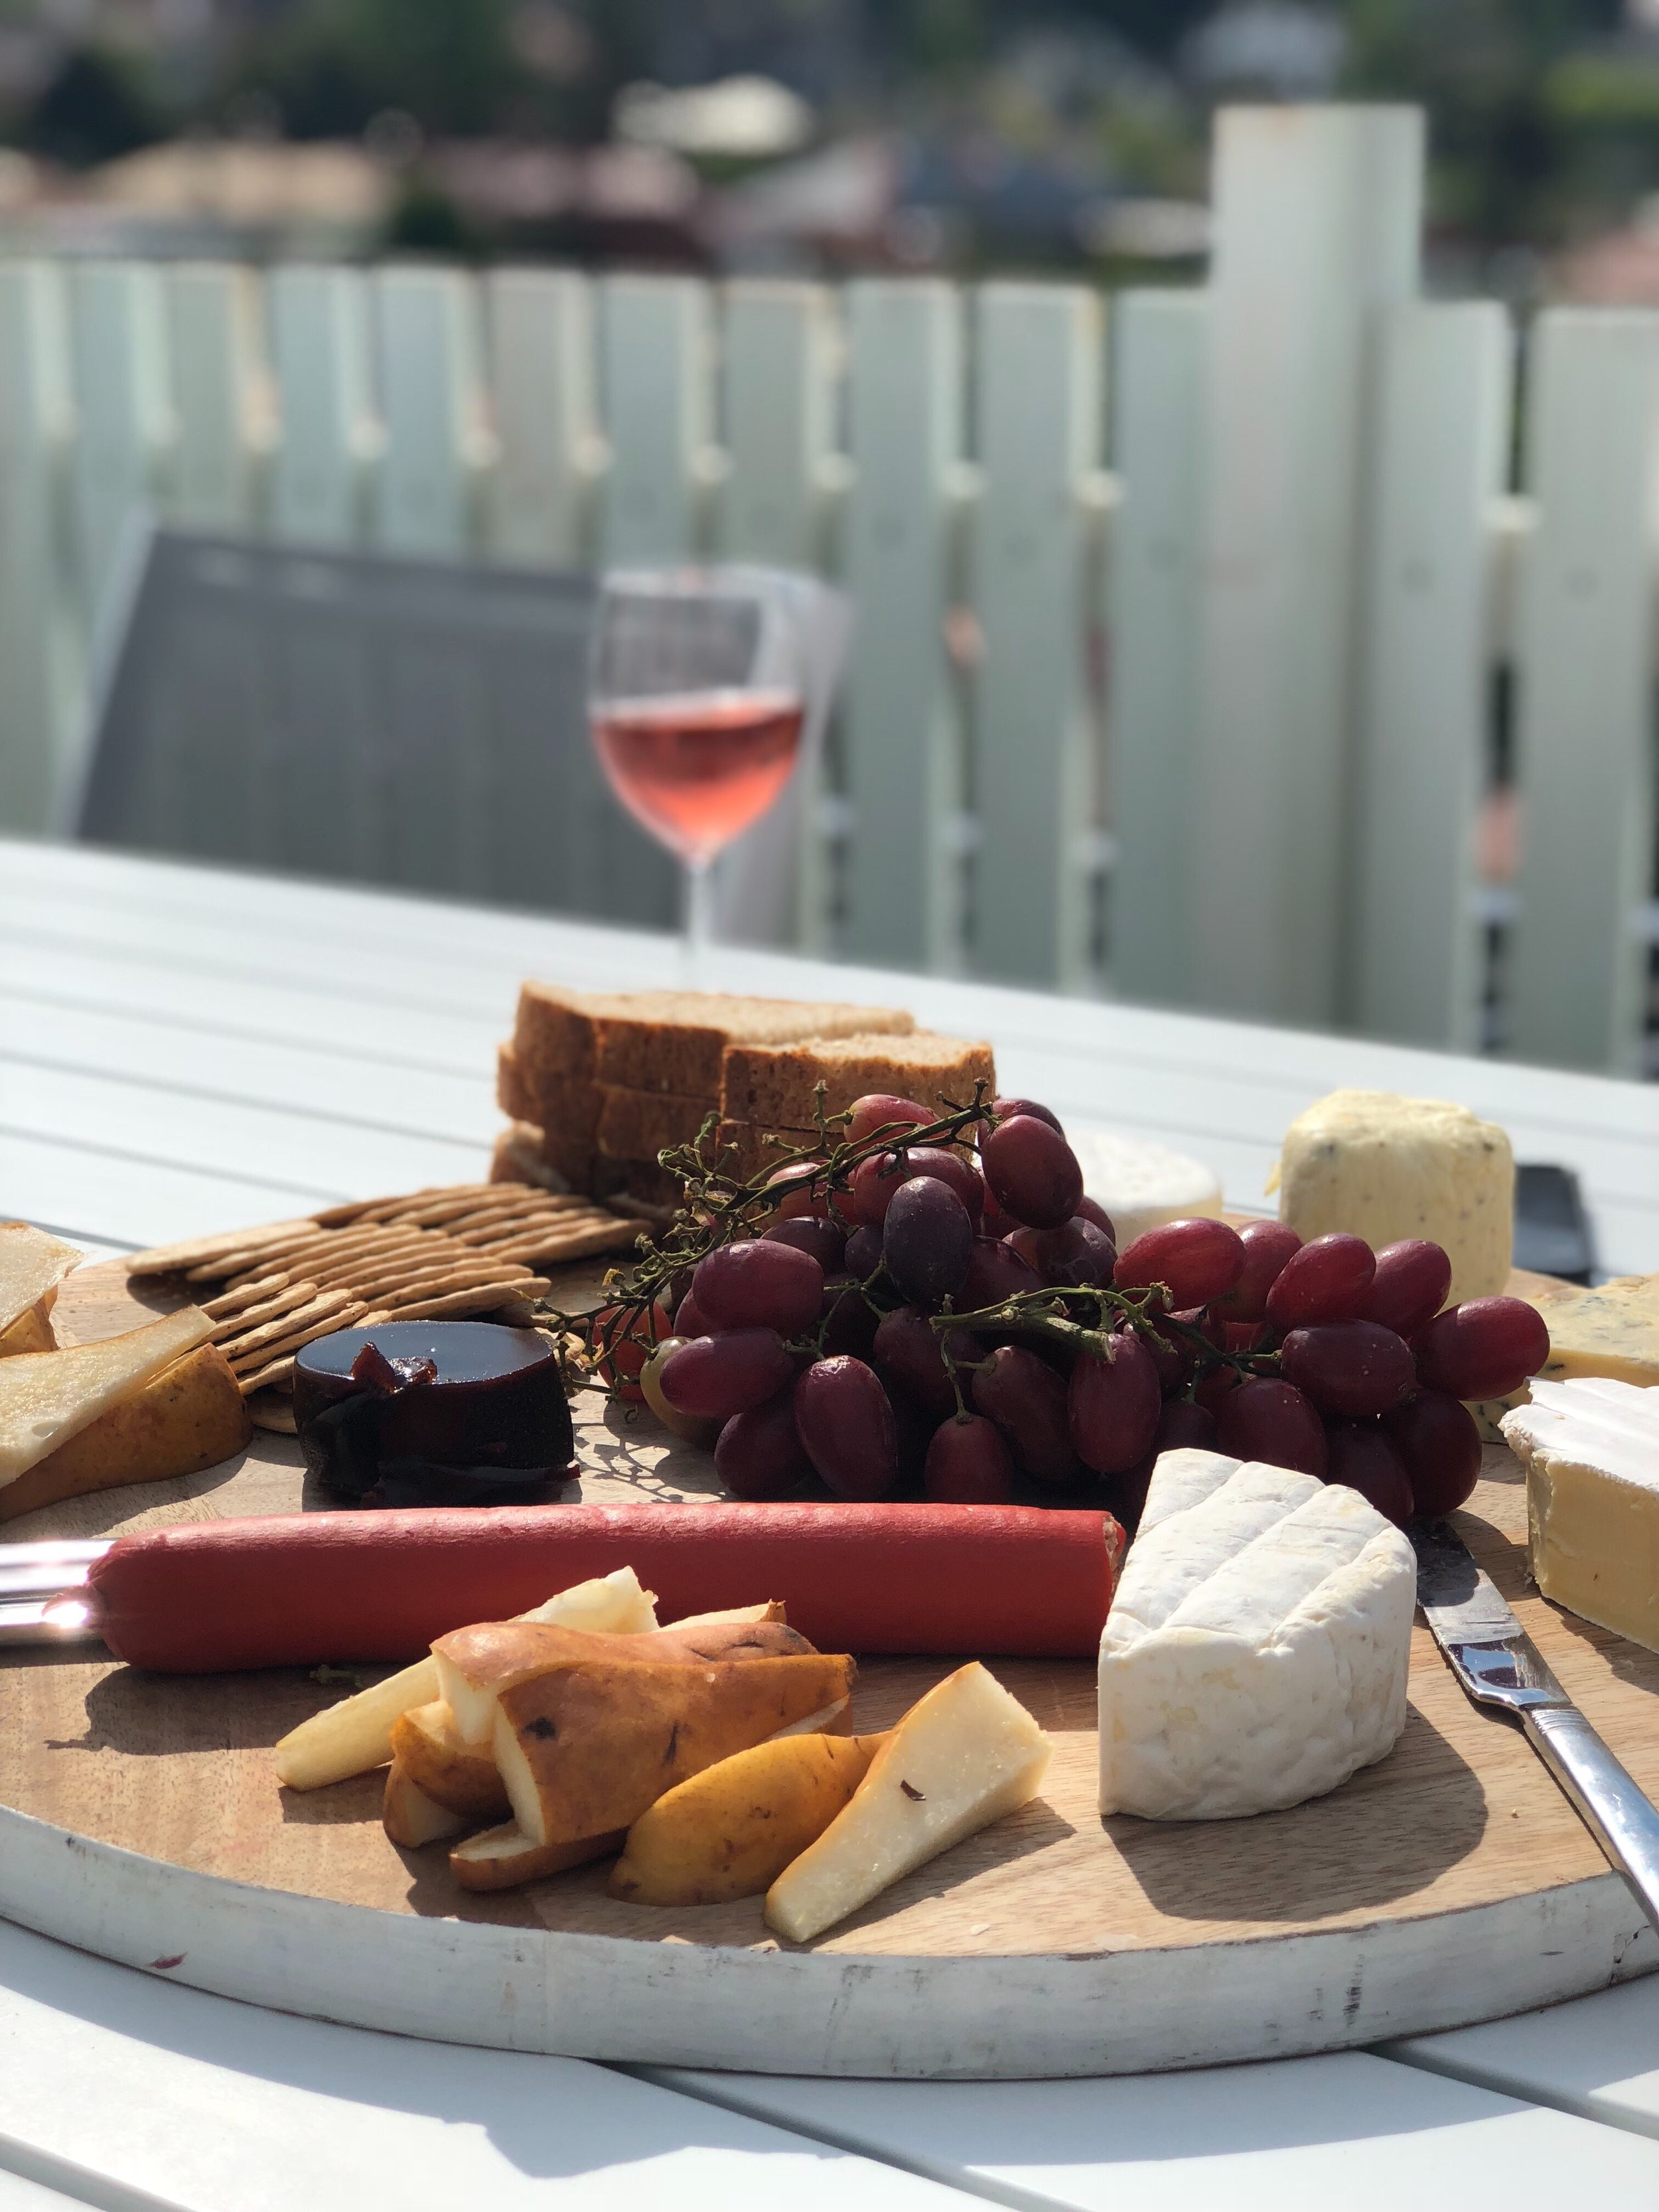 - We stayed at a gorgeous Airbnb in Sandy Bay, and got to enjoy wine and cheese in the sun on the balcony at the end of each day. Let me tell you, the food and wine scene in Tassie is bumpin'.Here are a few spots where we ate that I would recommend:Ettie's (we had small bites and wine but the degustation menu looked yummy, and affordable!)MACq 01 (on the water, lot's of delicious seafood options)Pilgrim Coffee (once you get past the weird coffee options, a